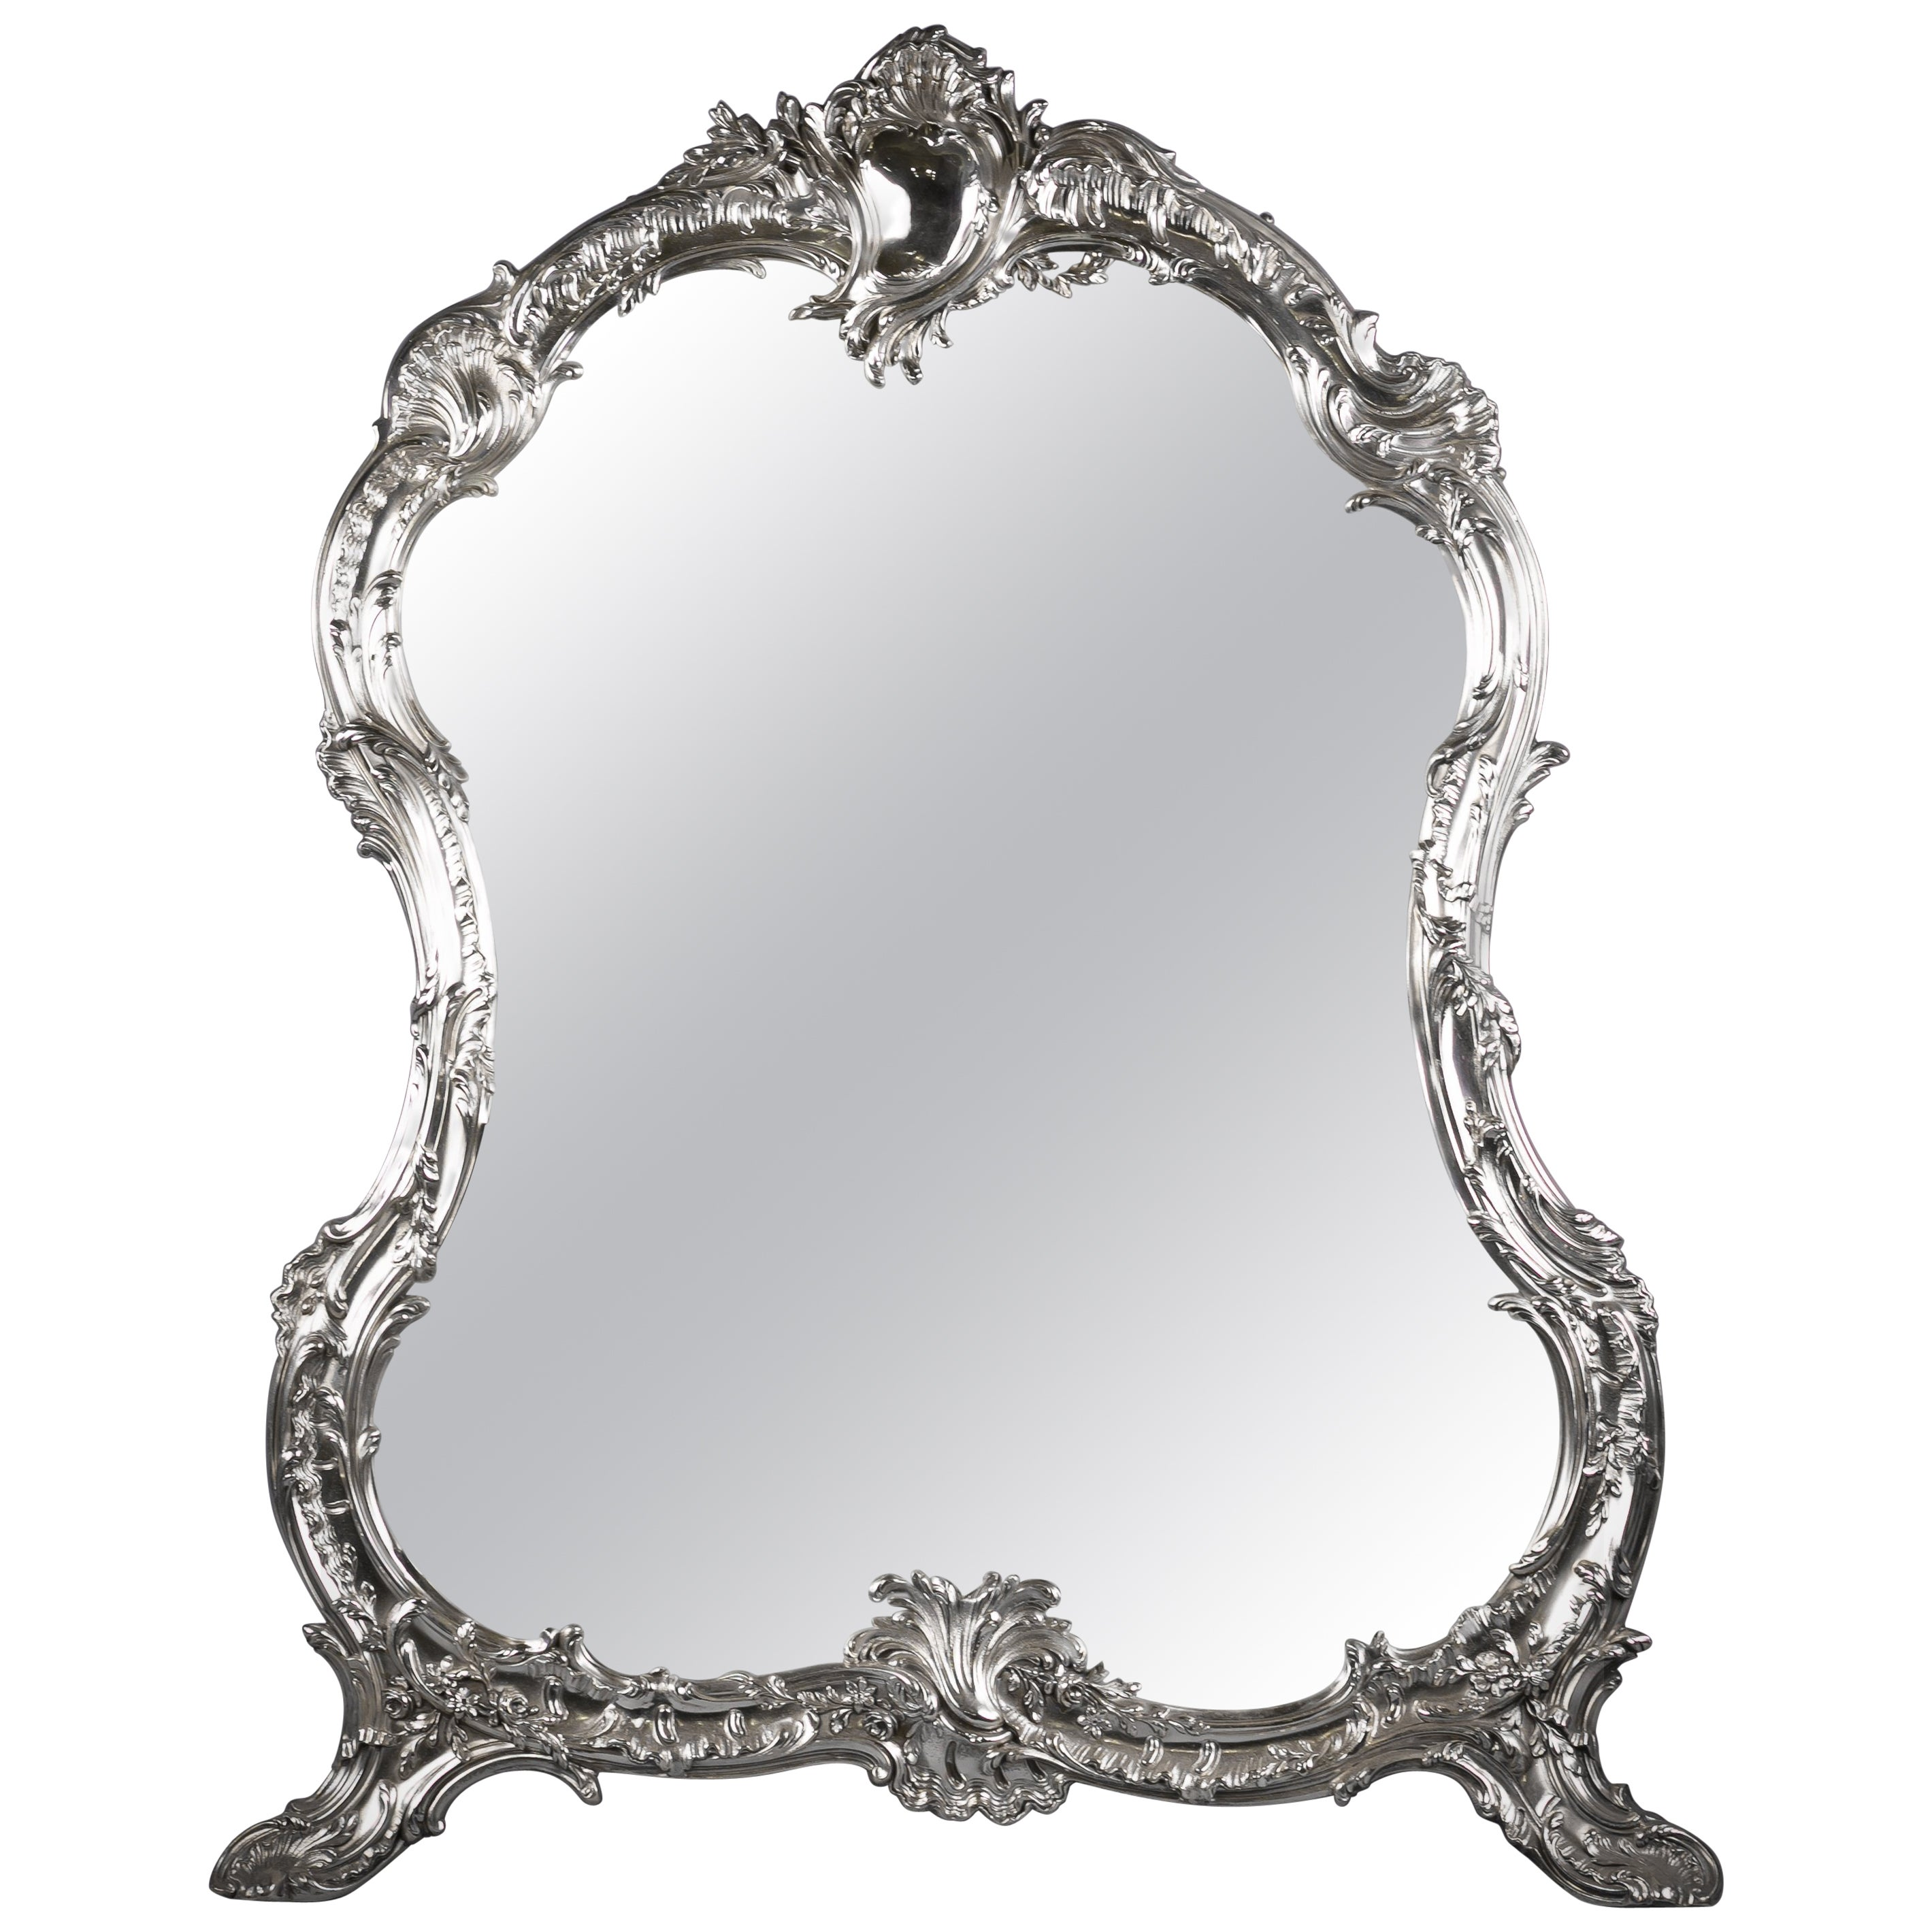 Large Continental Silver Table Mirror, circa 1880